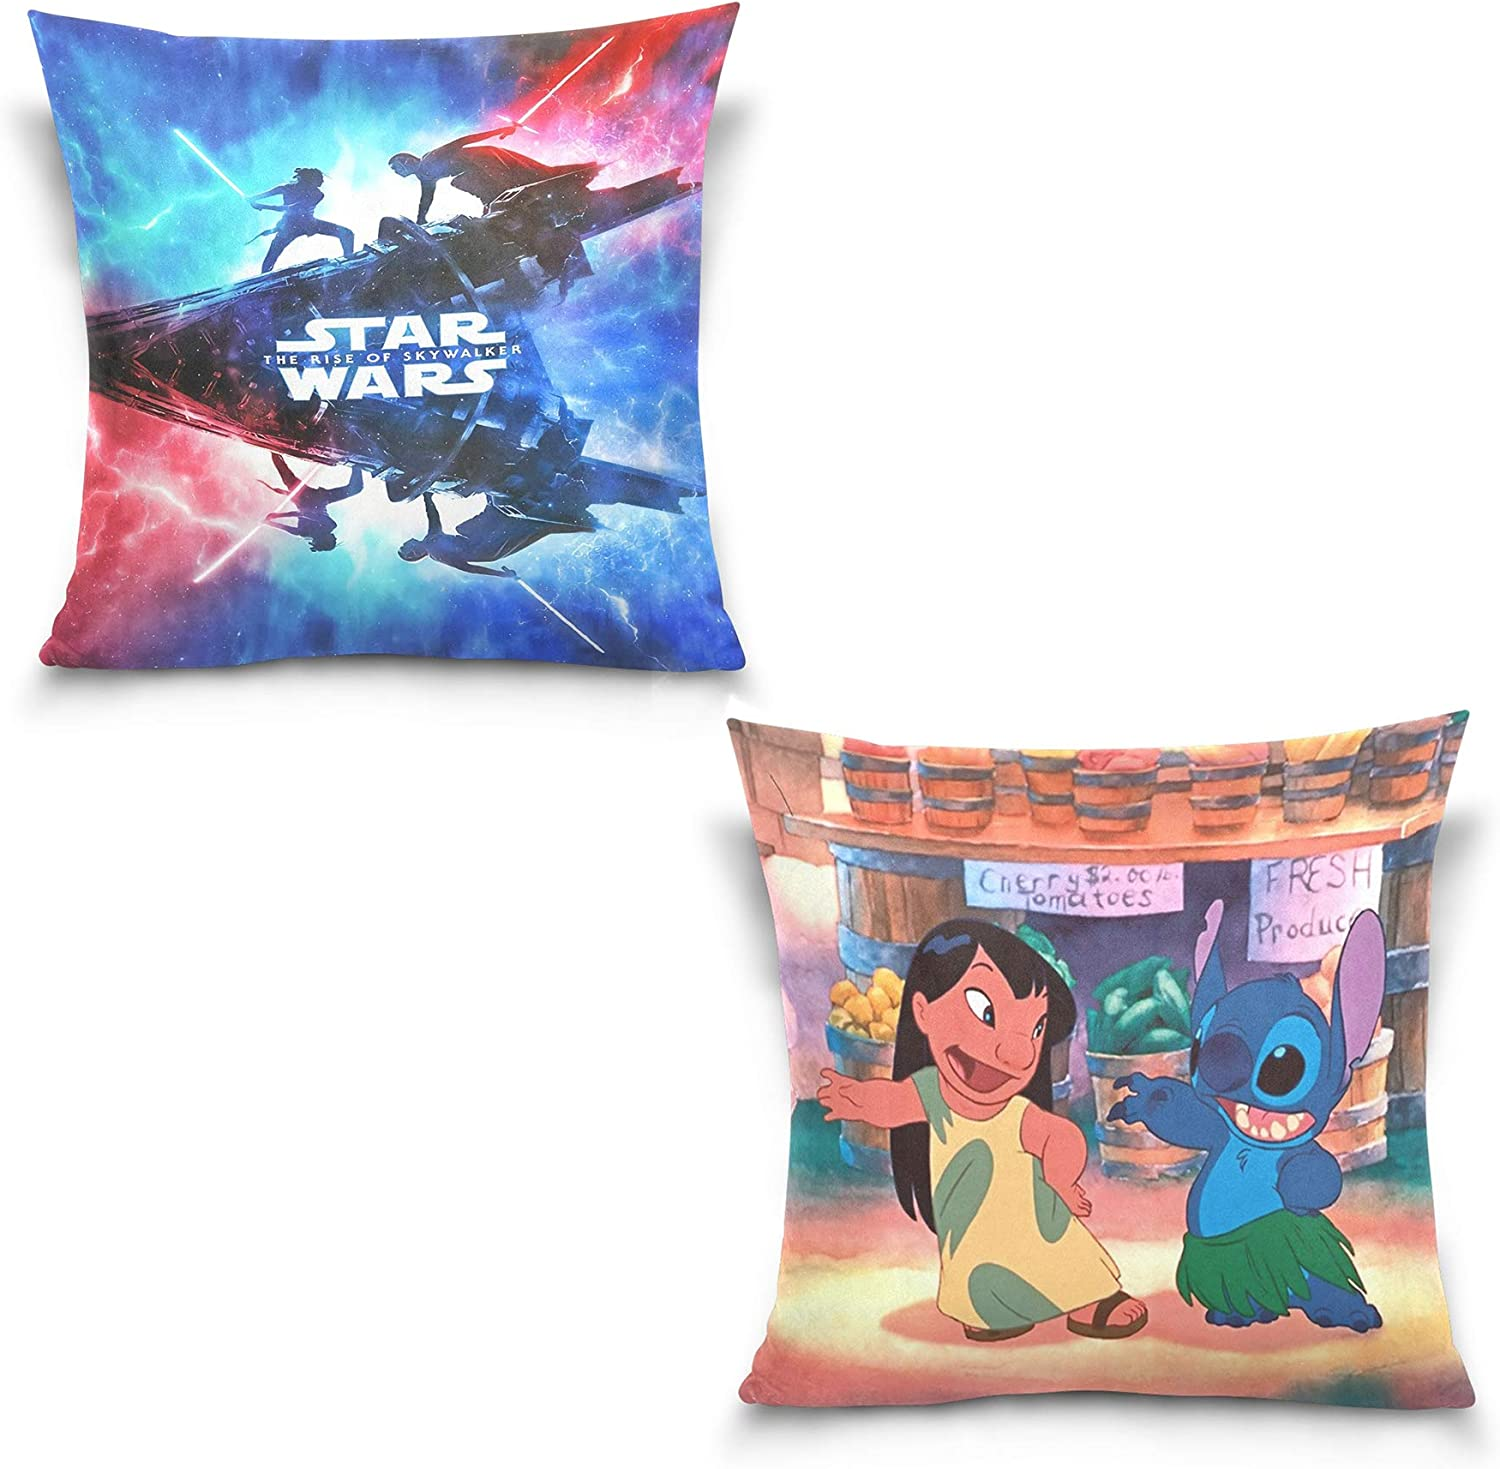 Star Wars JNKPOAI Star Wars Pillowcase 2 Sets of 18x18 Inch for Living Room Sofa Bedroom Car Decoration Supplies Personalized Custom Throw Pillow Covers Suit with Zipper